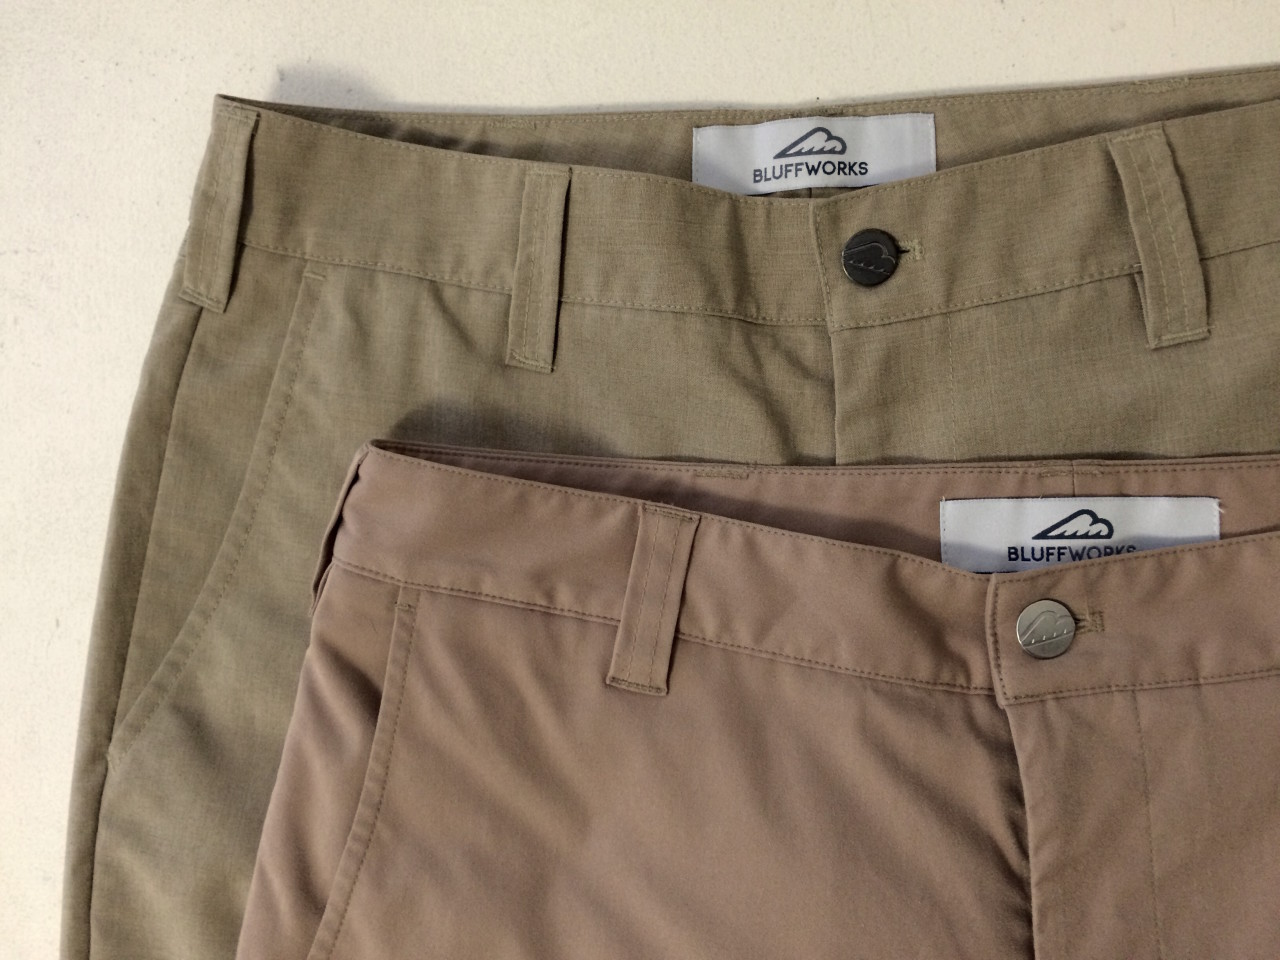 Bluffworks Chino vs Original Fabric